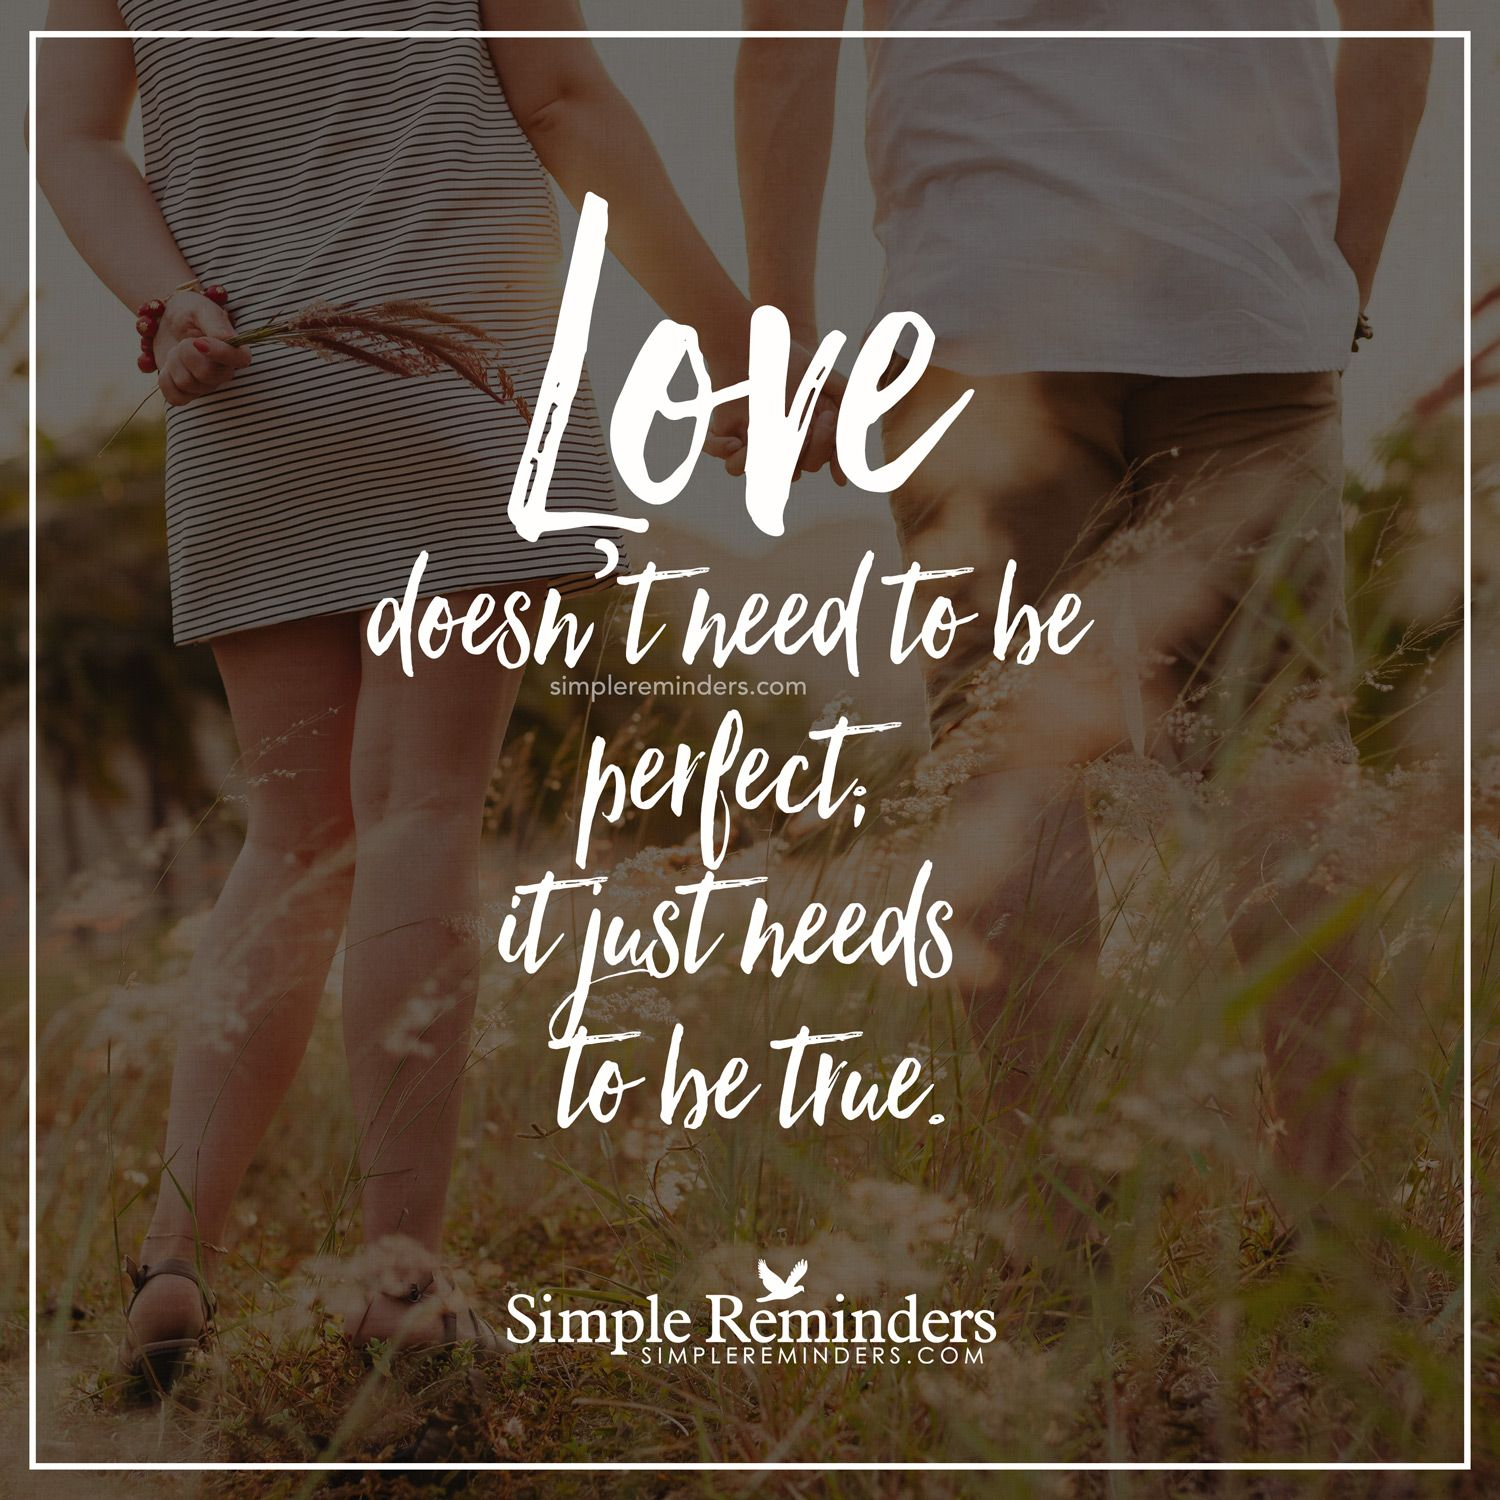 True love Love doesn't need to be perfect; it just needs